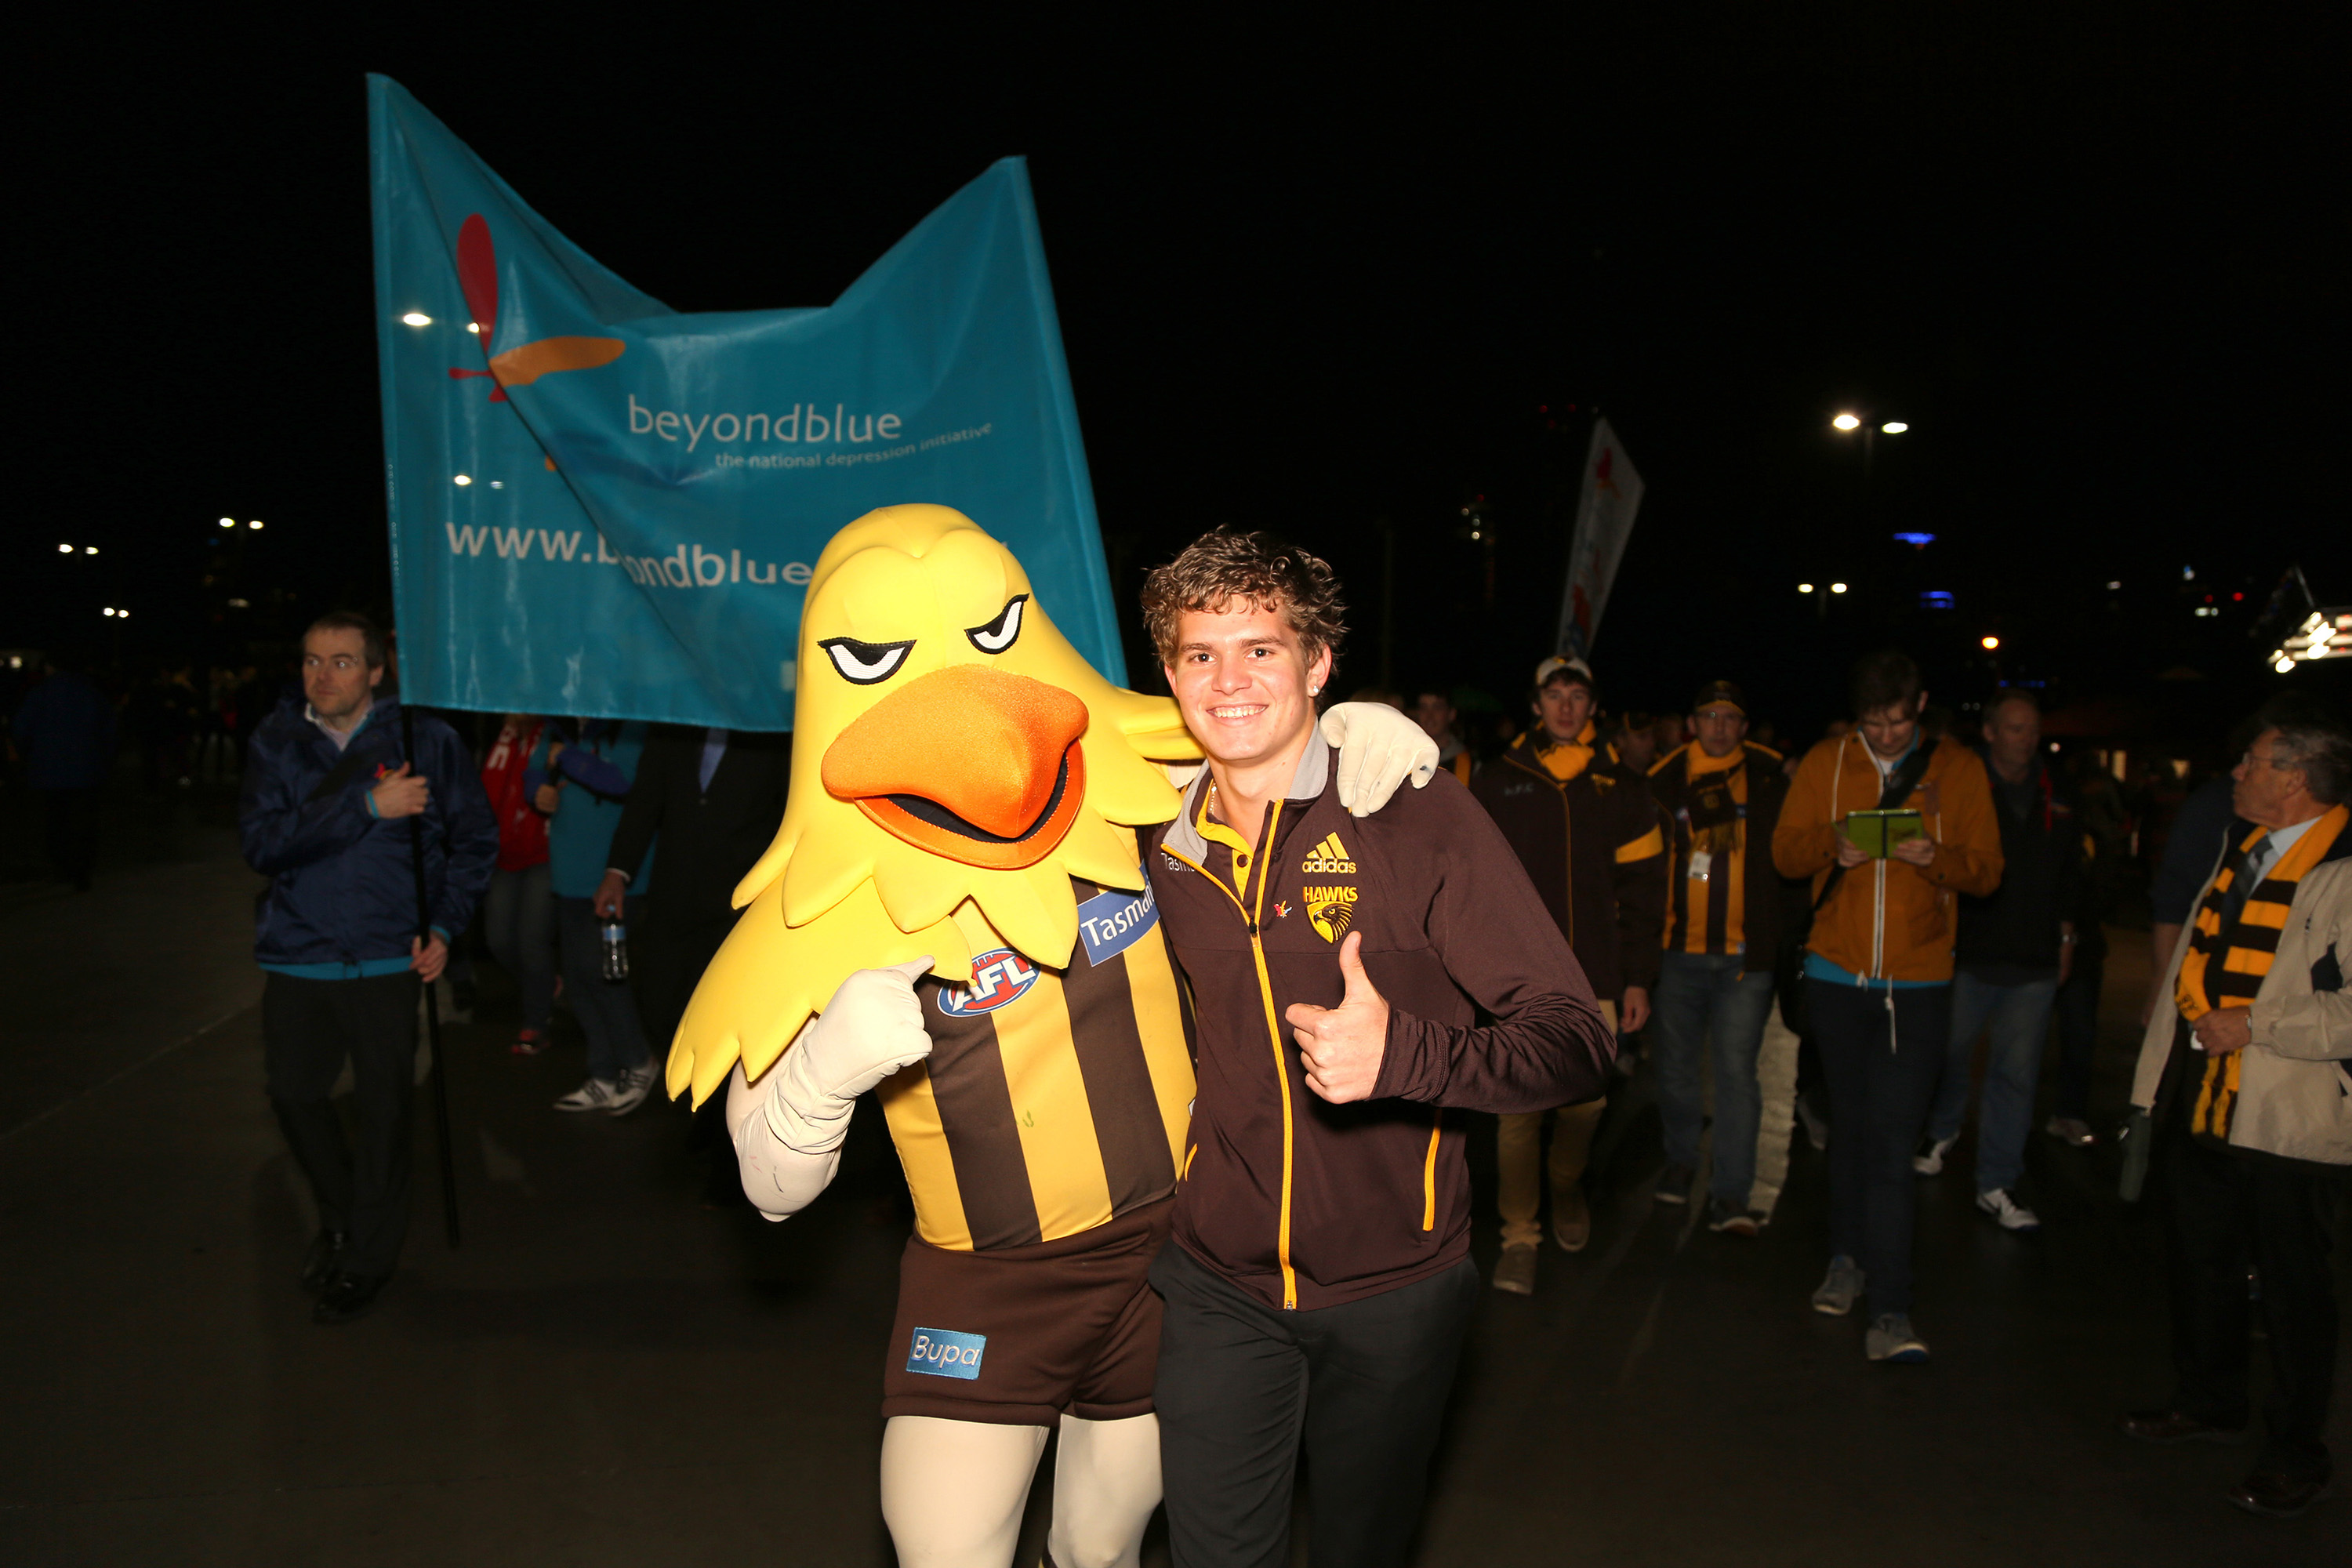 Hawks mascot 'Hawka' and player Jed Anderson help lead the March to the MCG before the AFLBeyond Blue Cup: VIC.